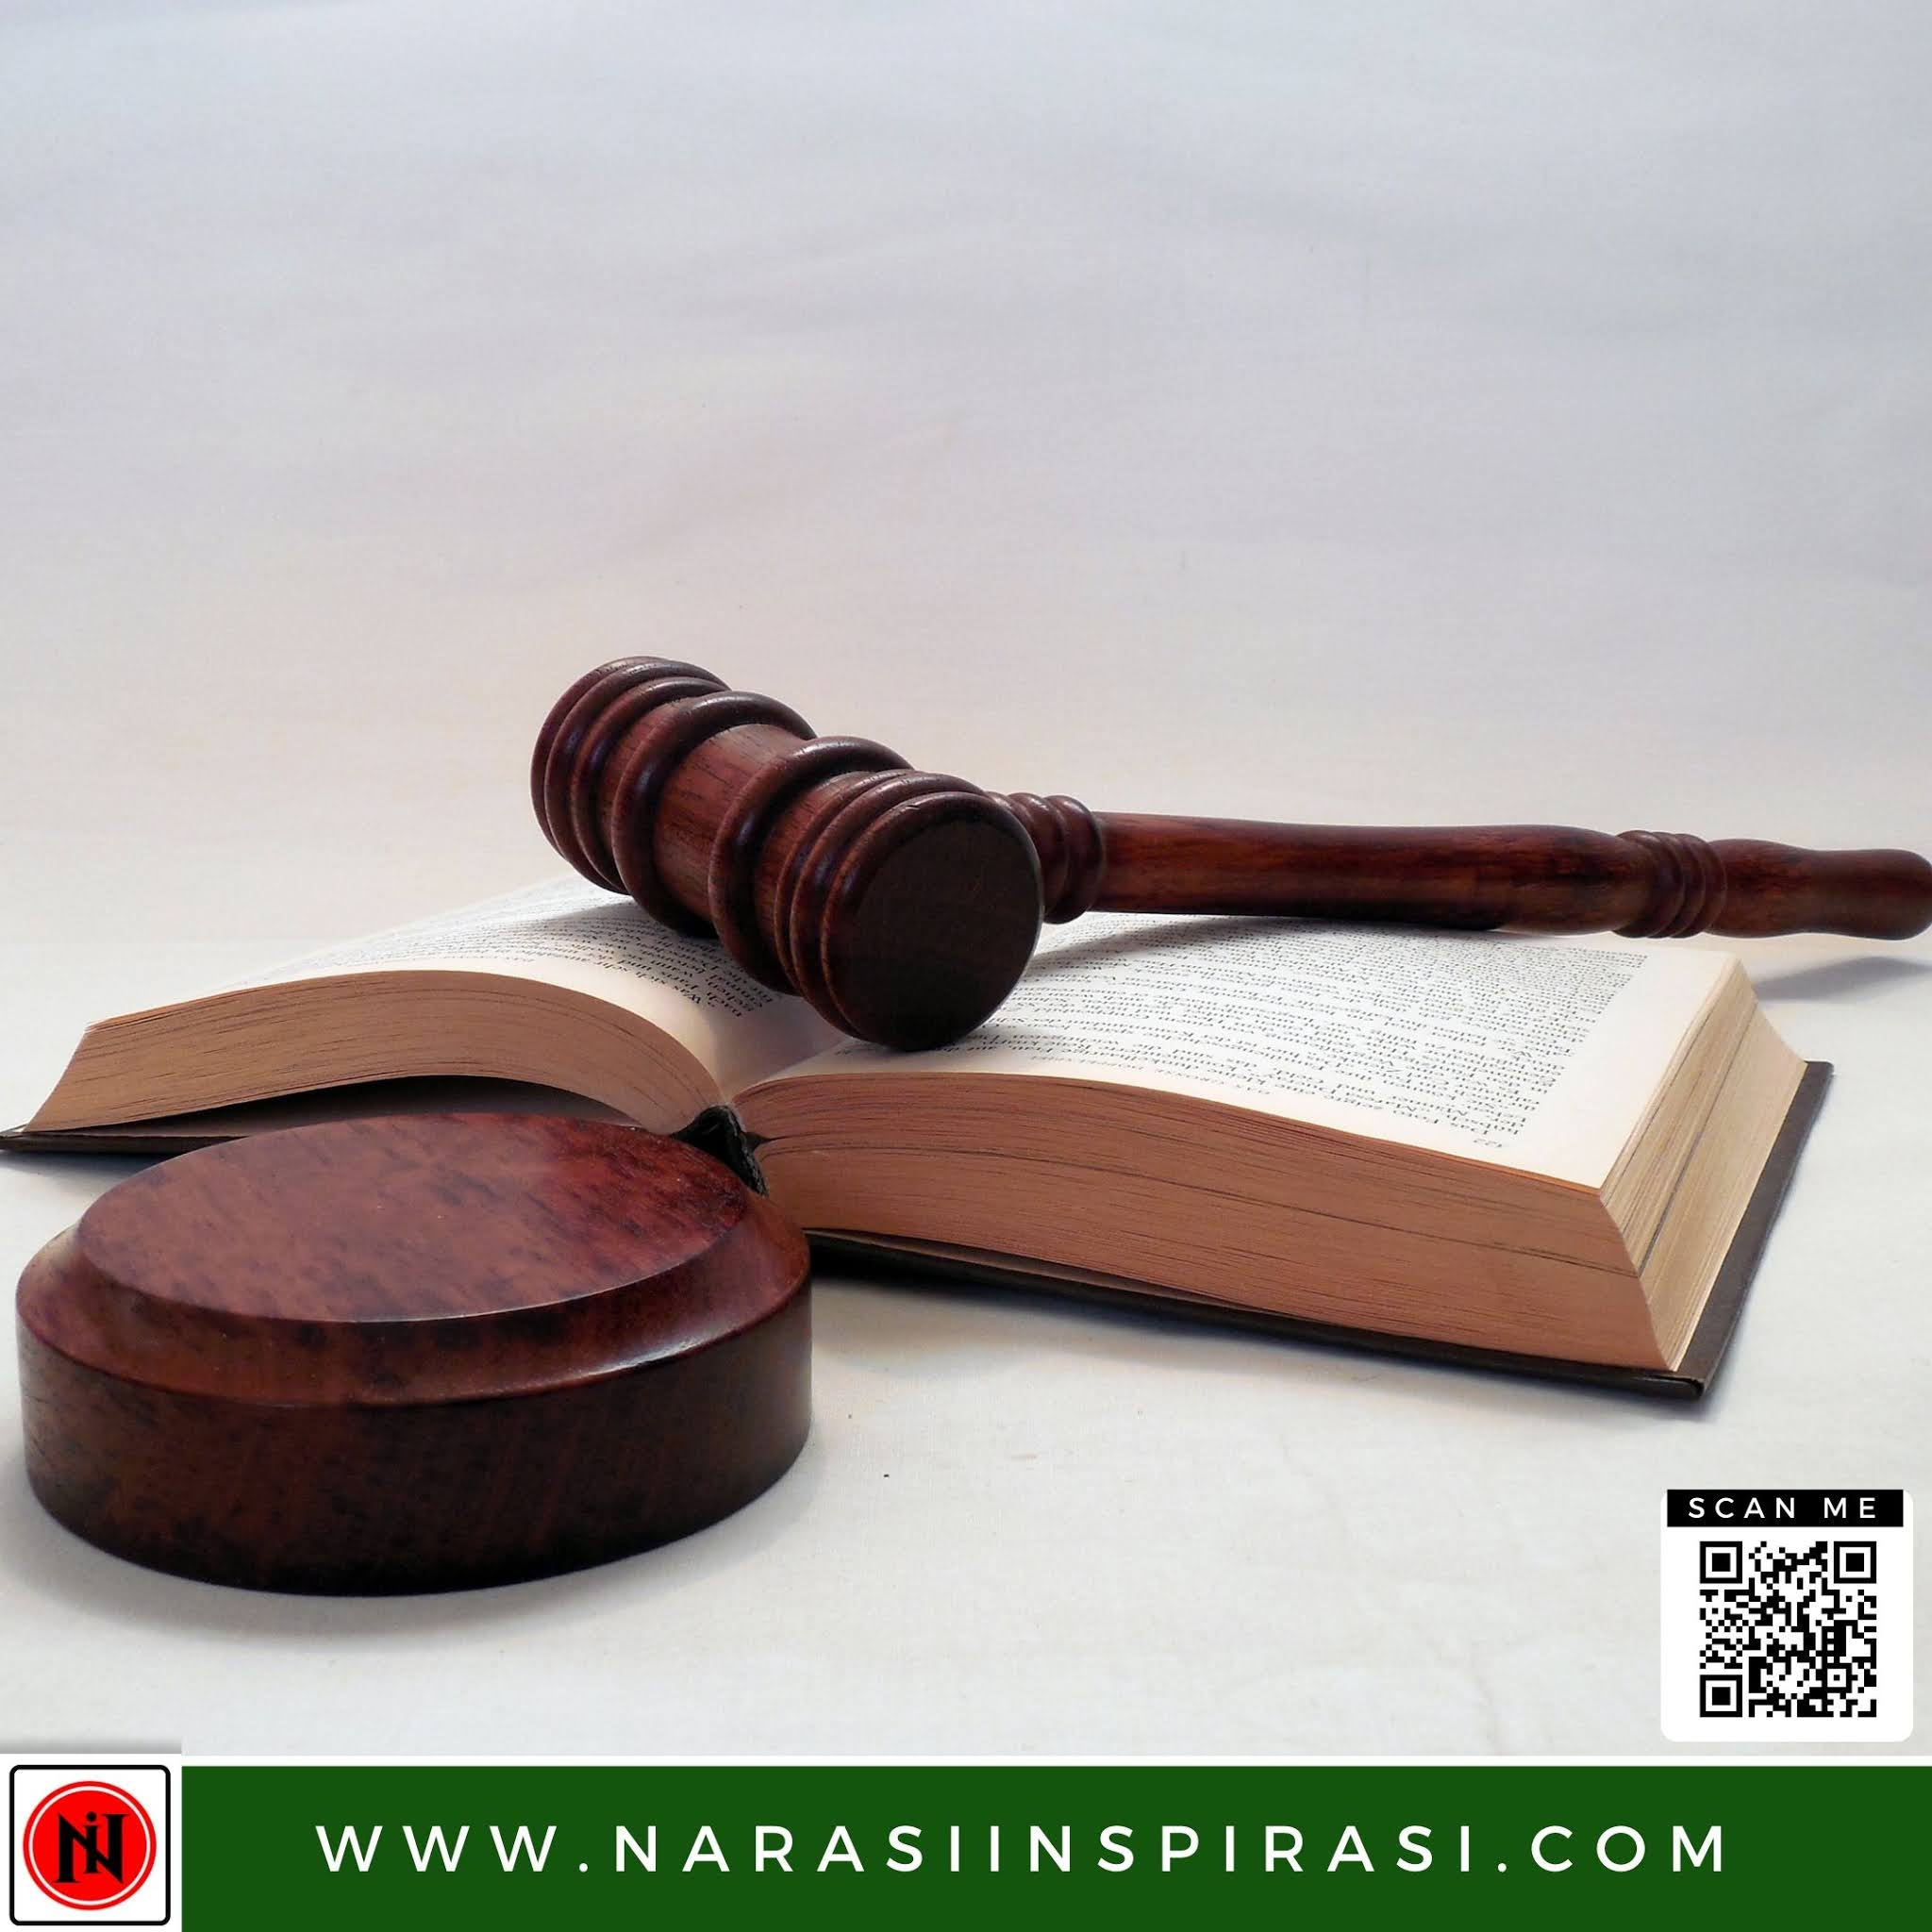 What Is Mesothelioma Law Firm And Asbestos Lawyers Narasi Inspirasi